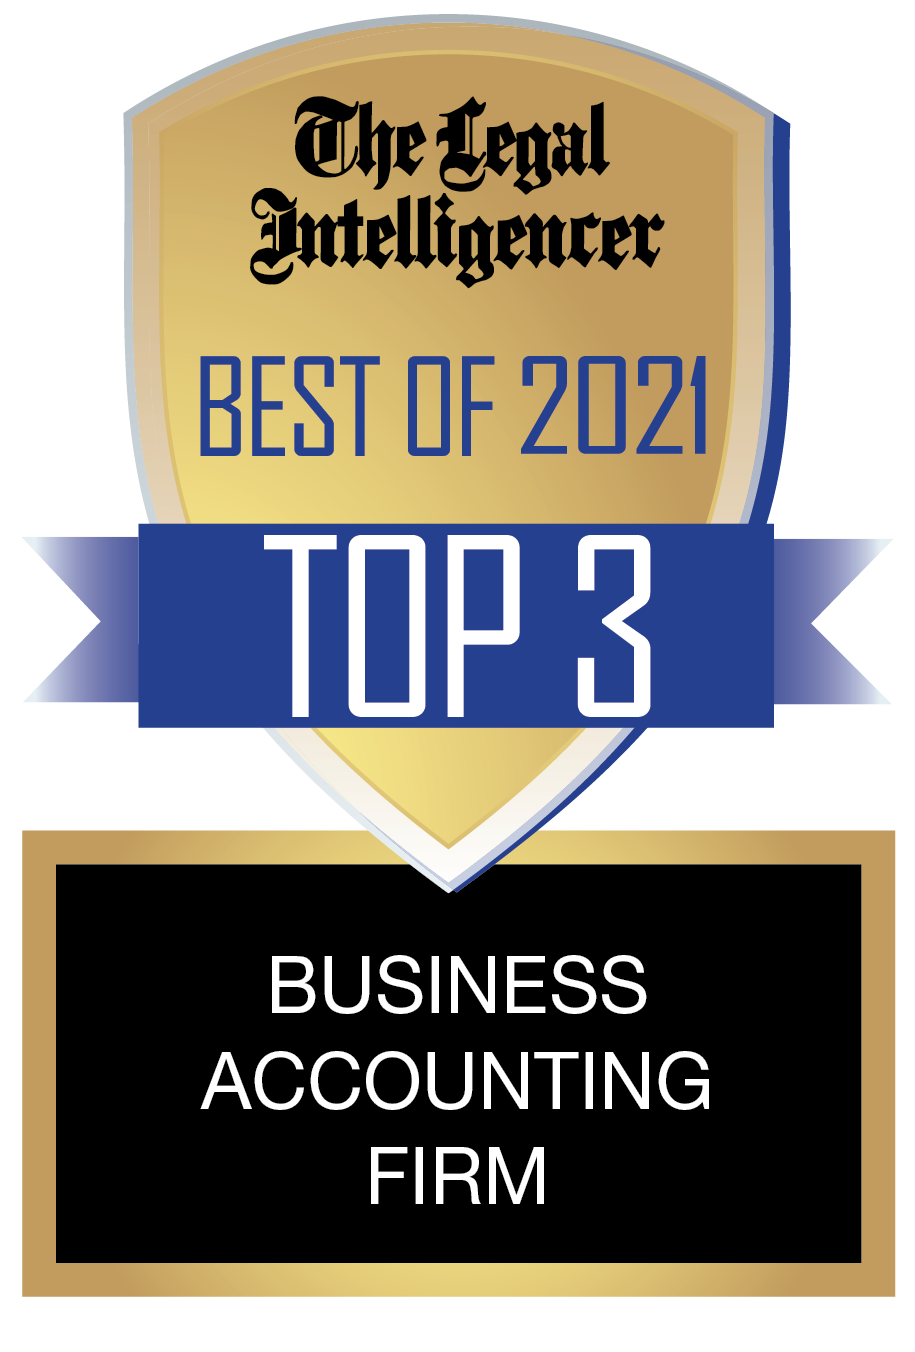 Legal Intelligencer - Top 3 Accounting Firm 2021